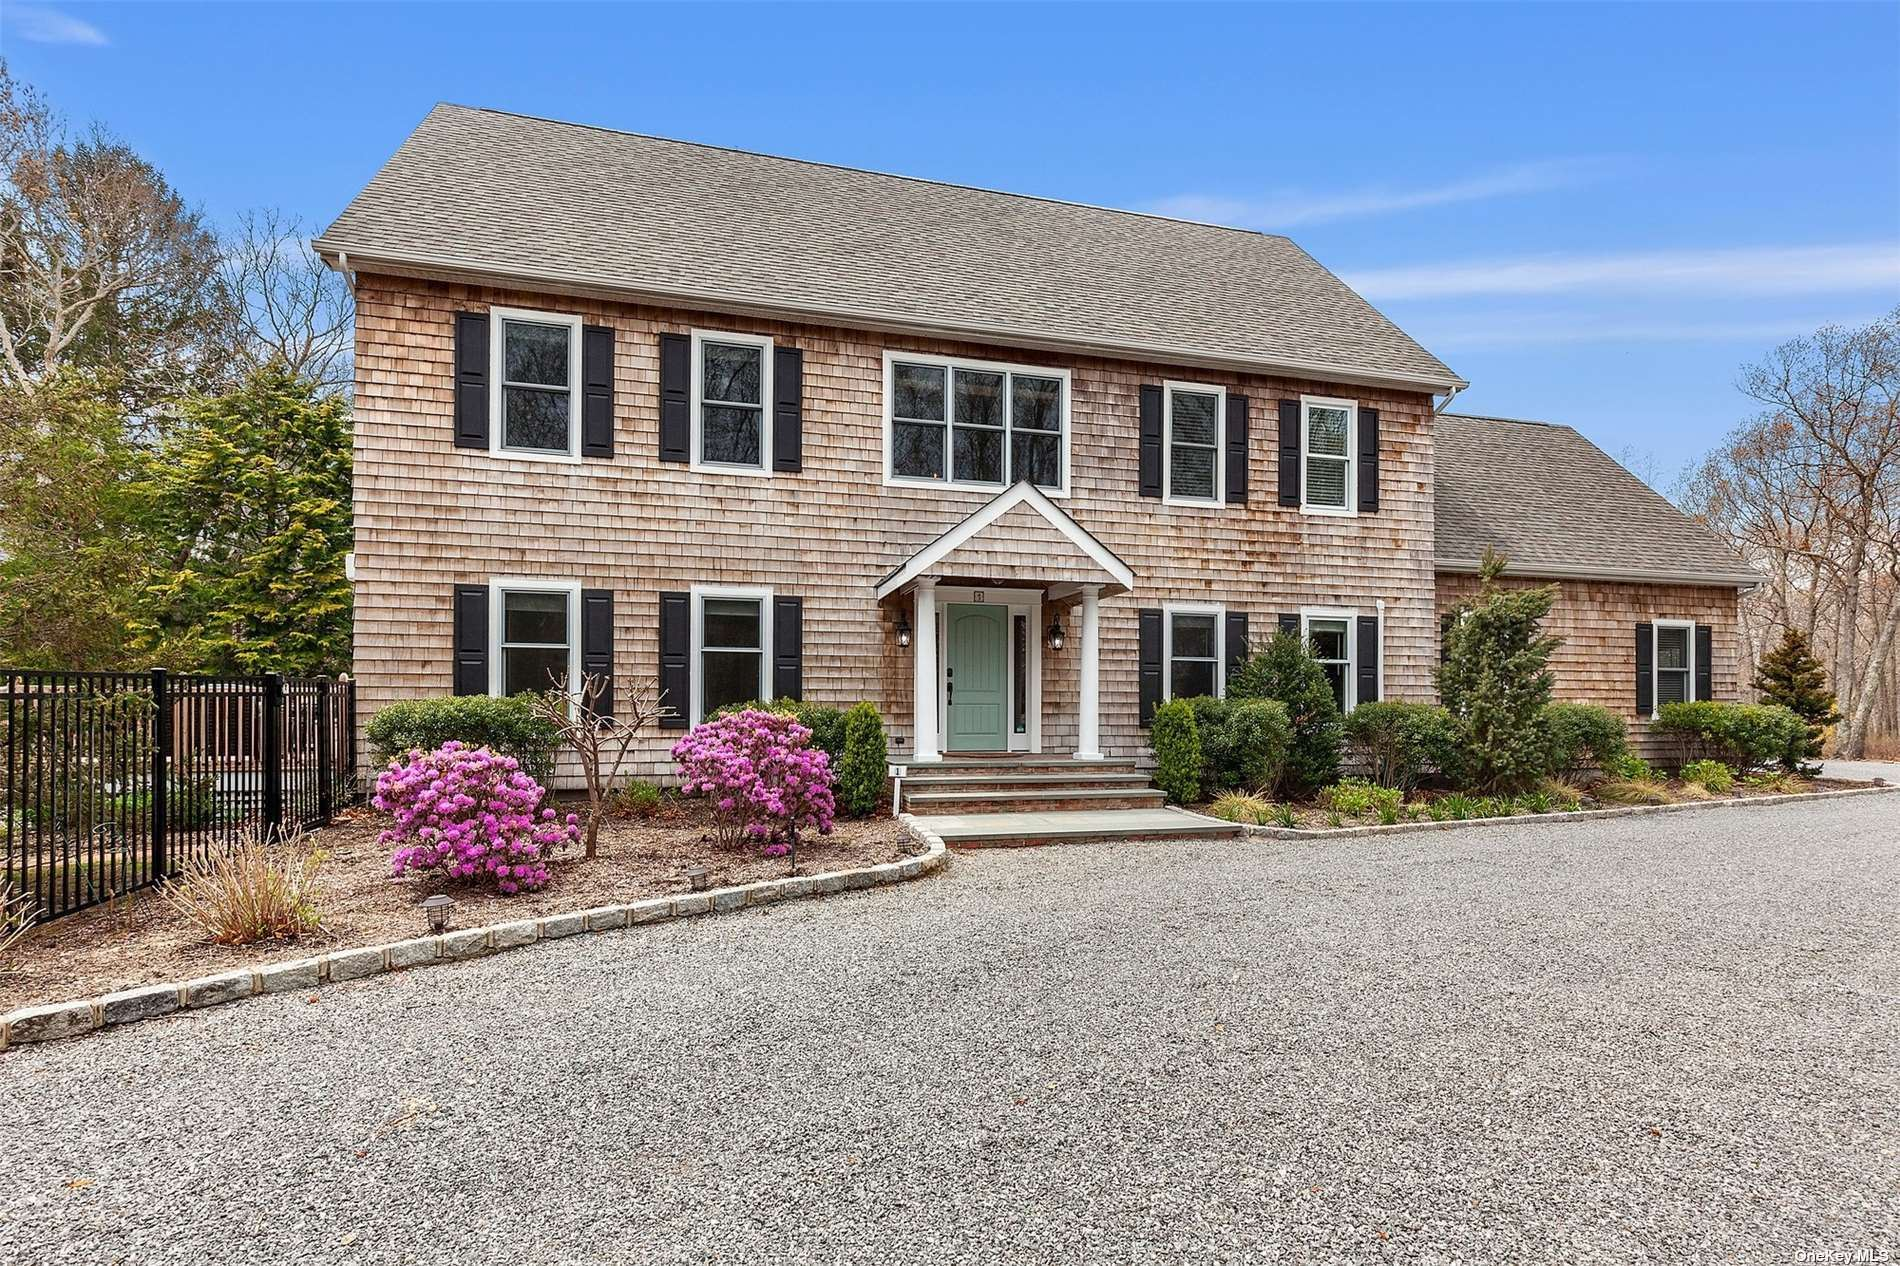 1 Saralins Way, East Quogue, NY 11942 - MLS#: 3308404